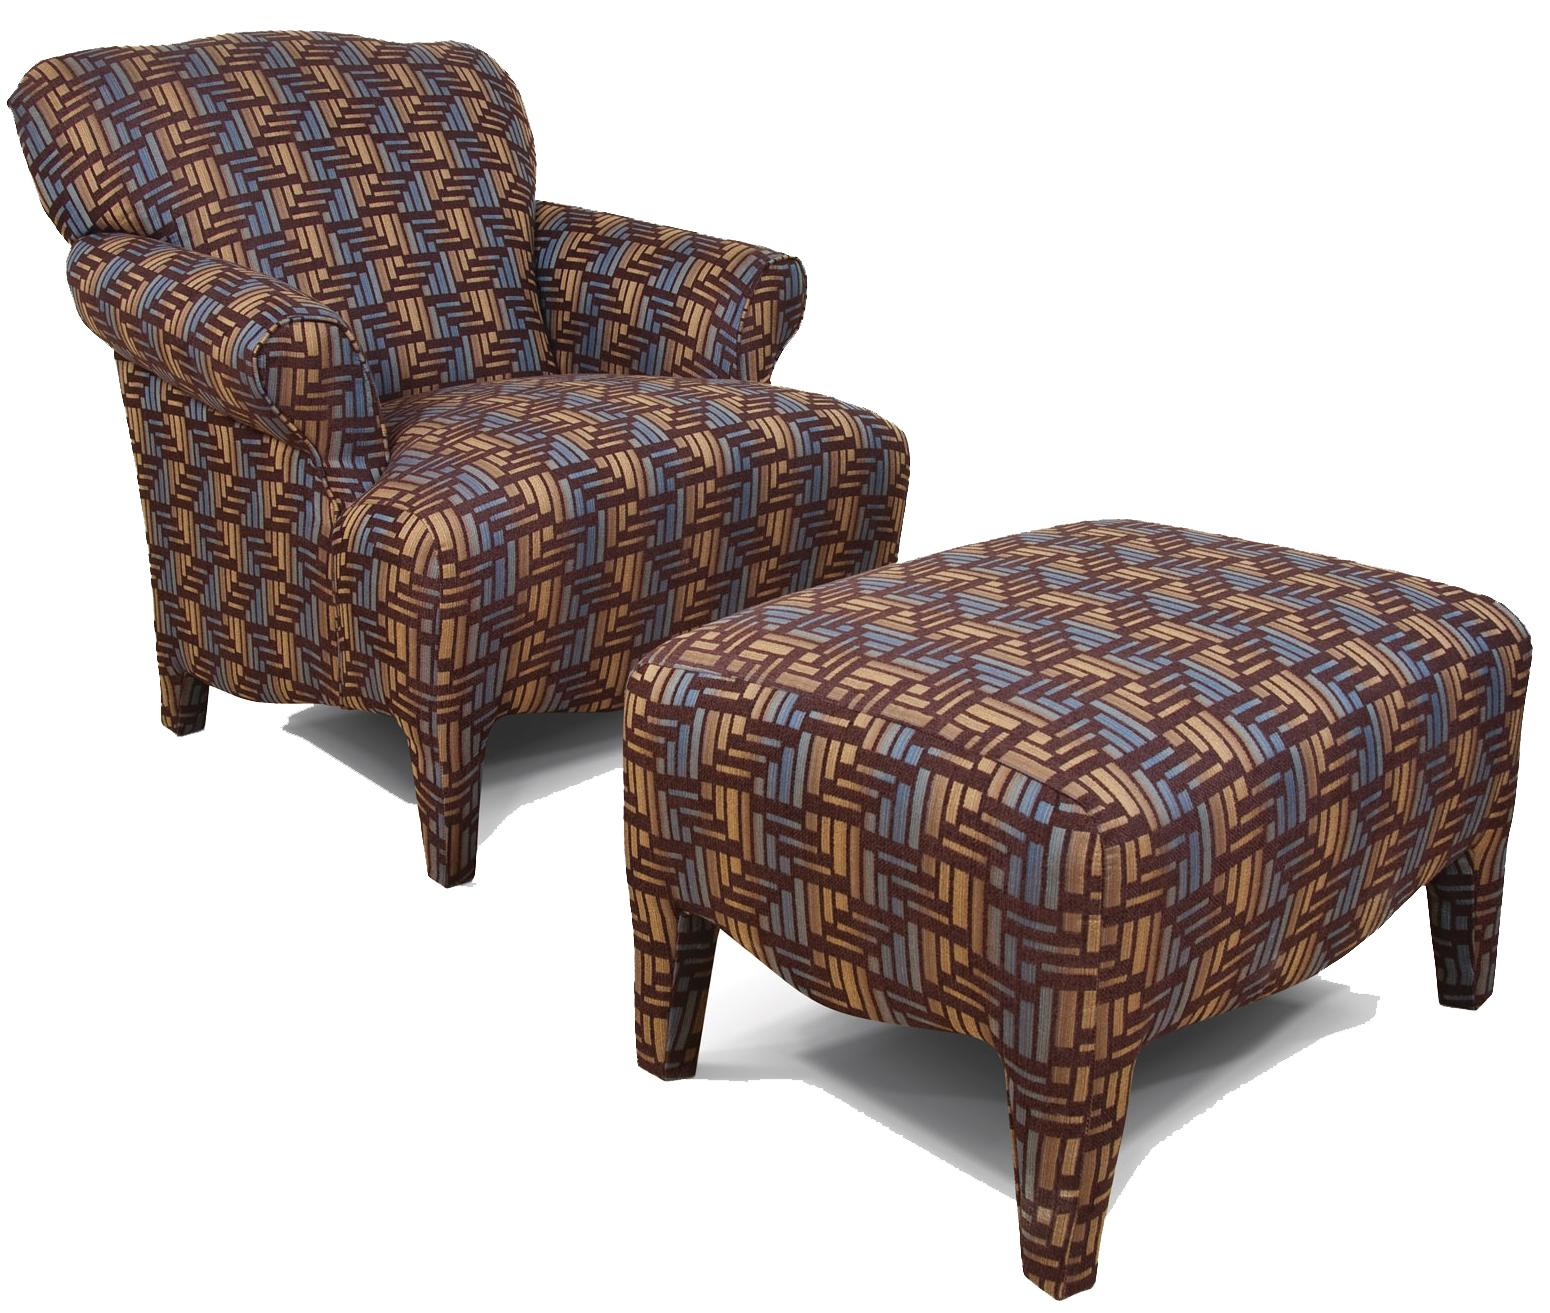 England Summit Upholstered Chair & Ottoman - Item Number: 3854+7